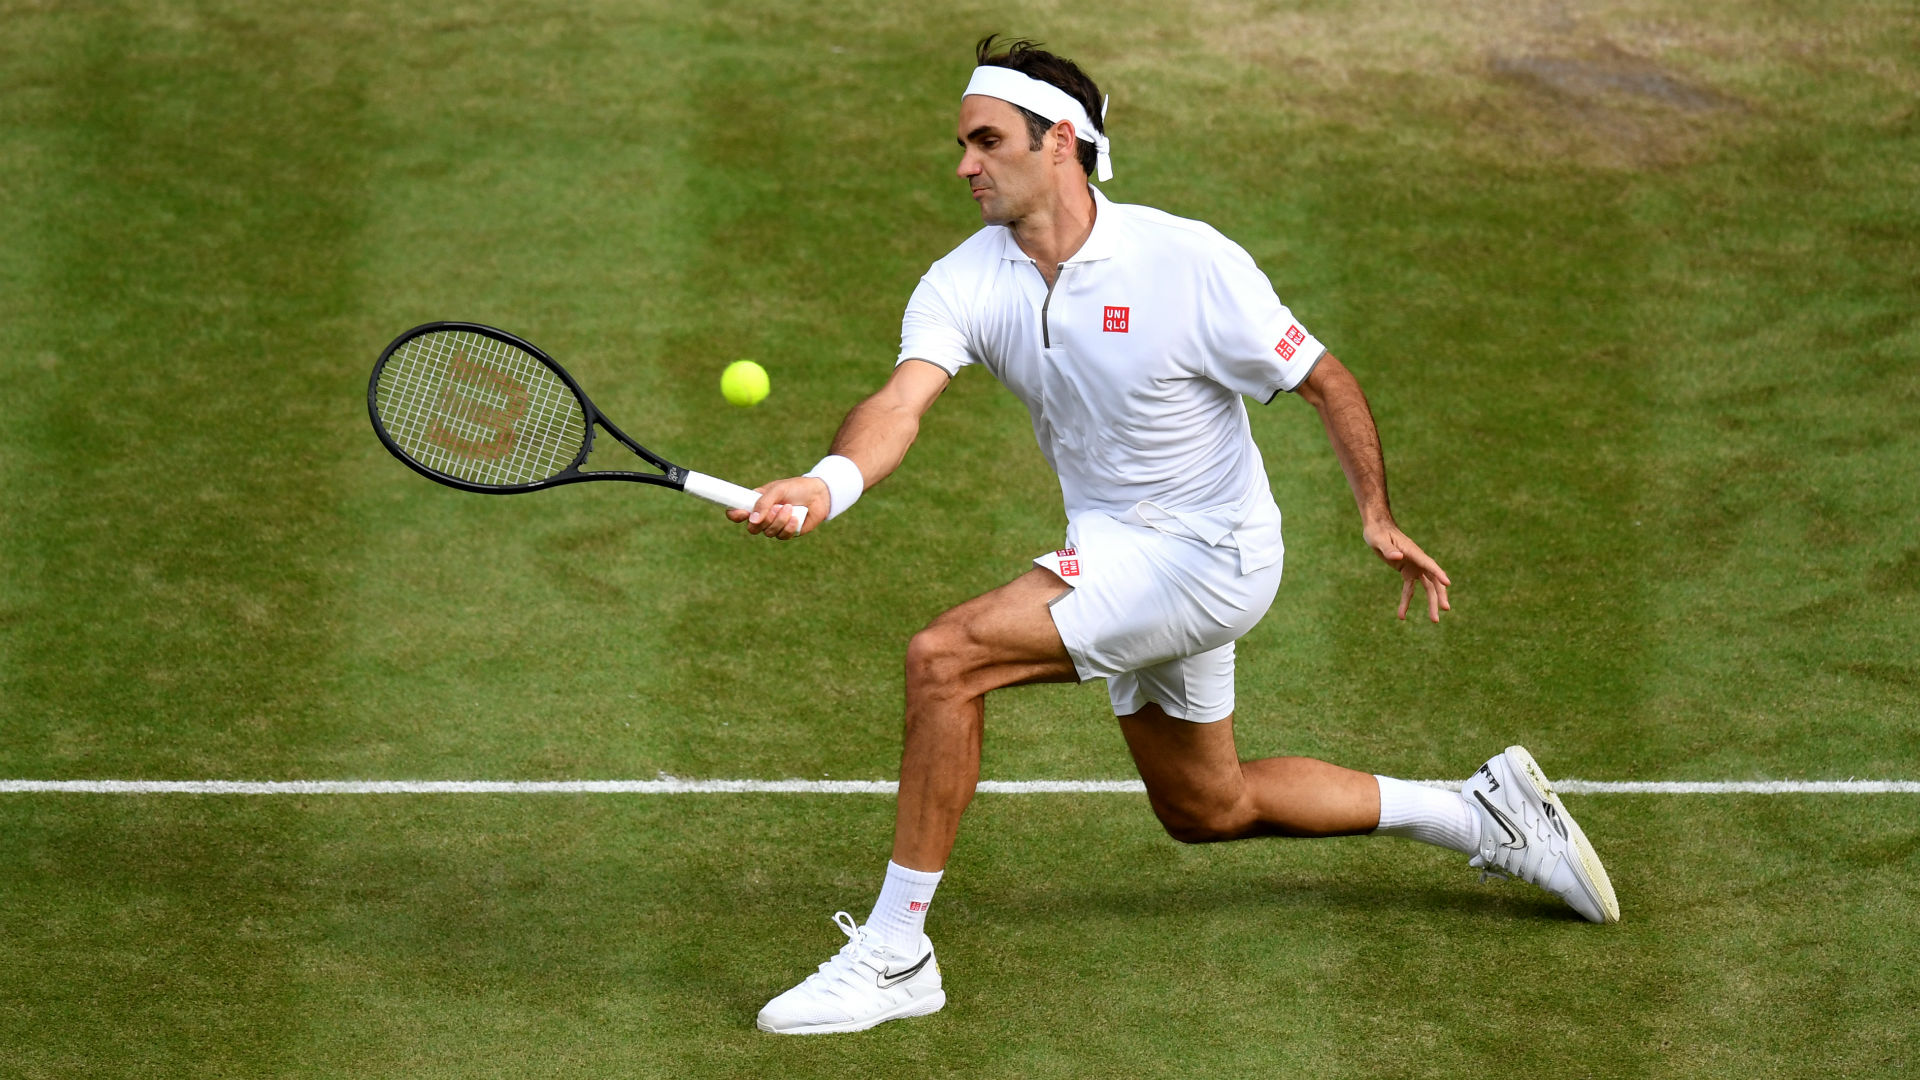 Federer claims historic 100th win